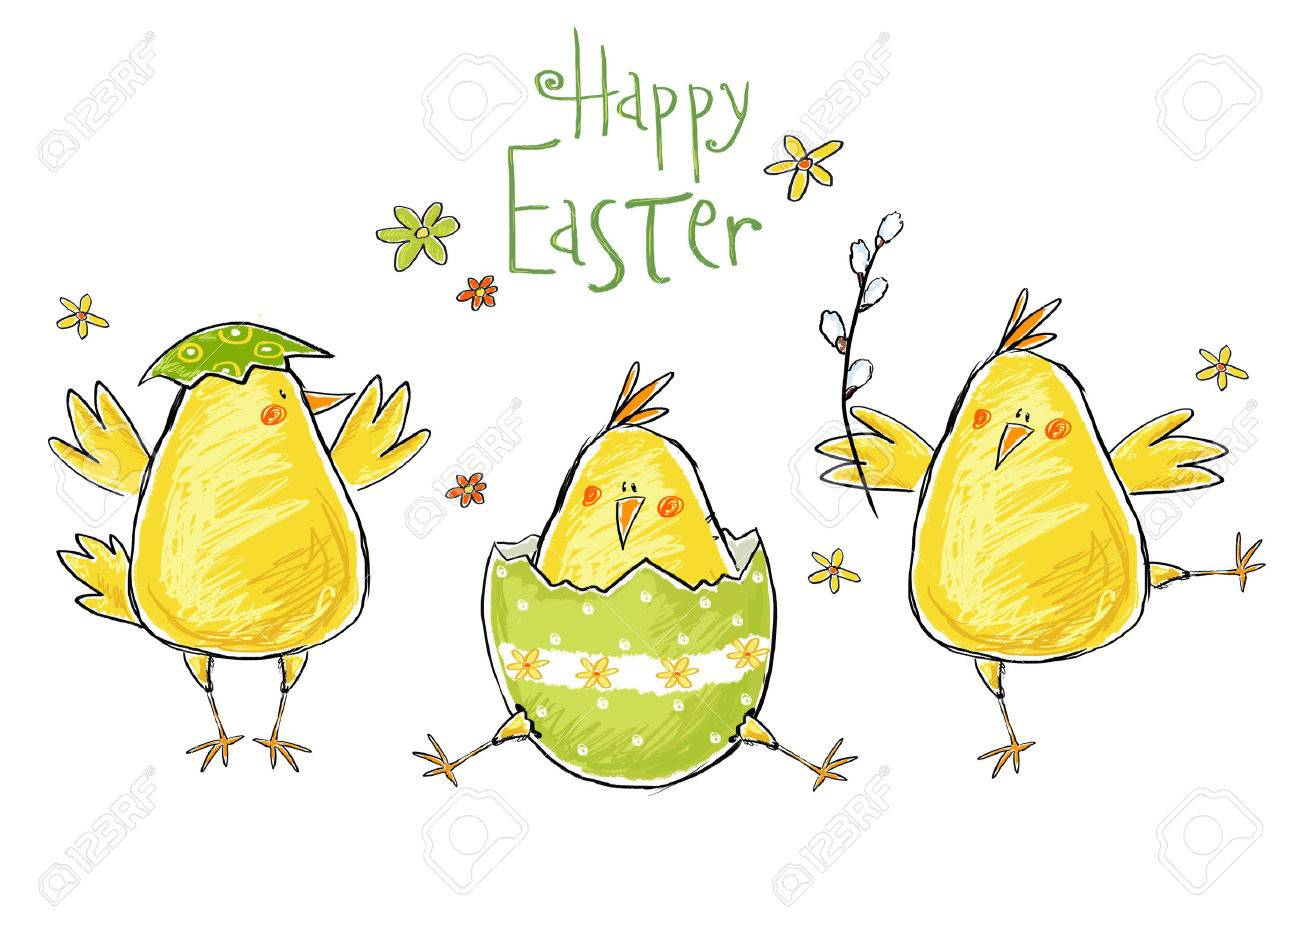 Happy Easter Images Cartoon